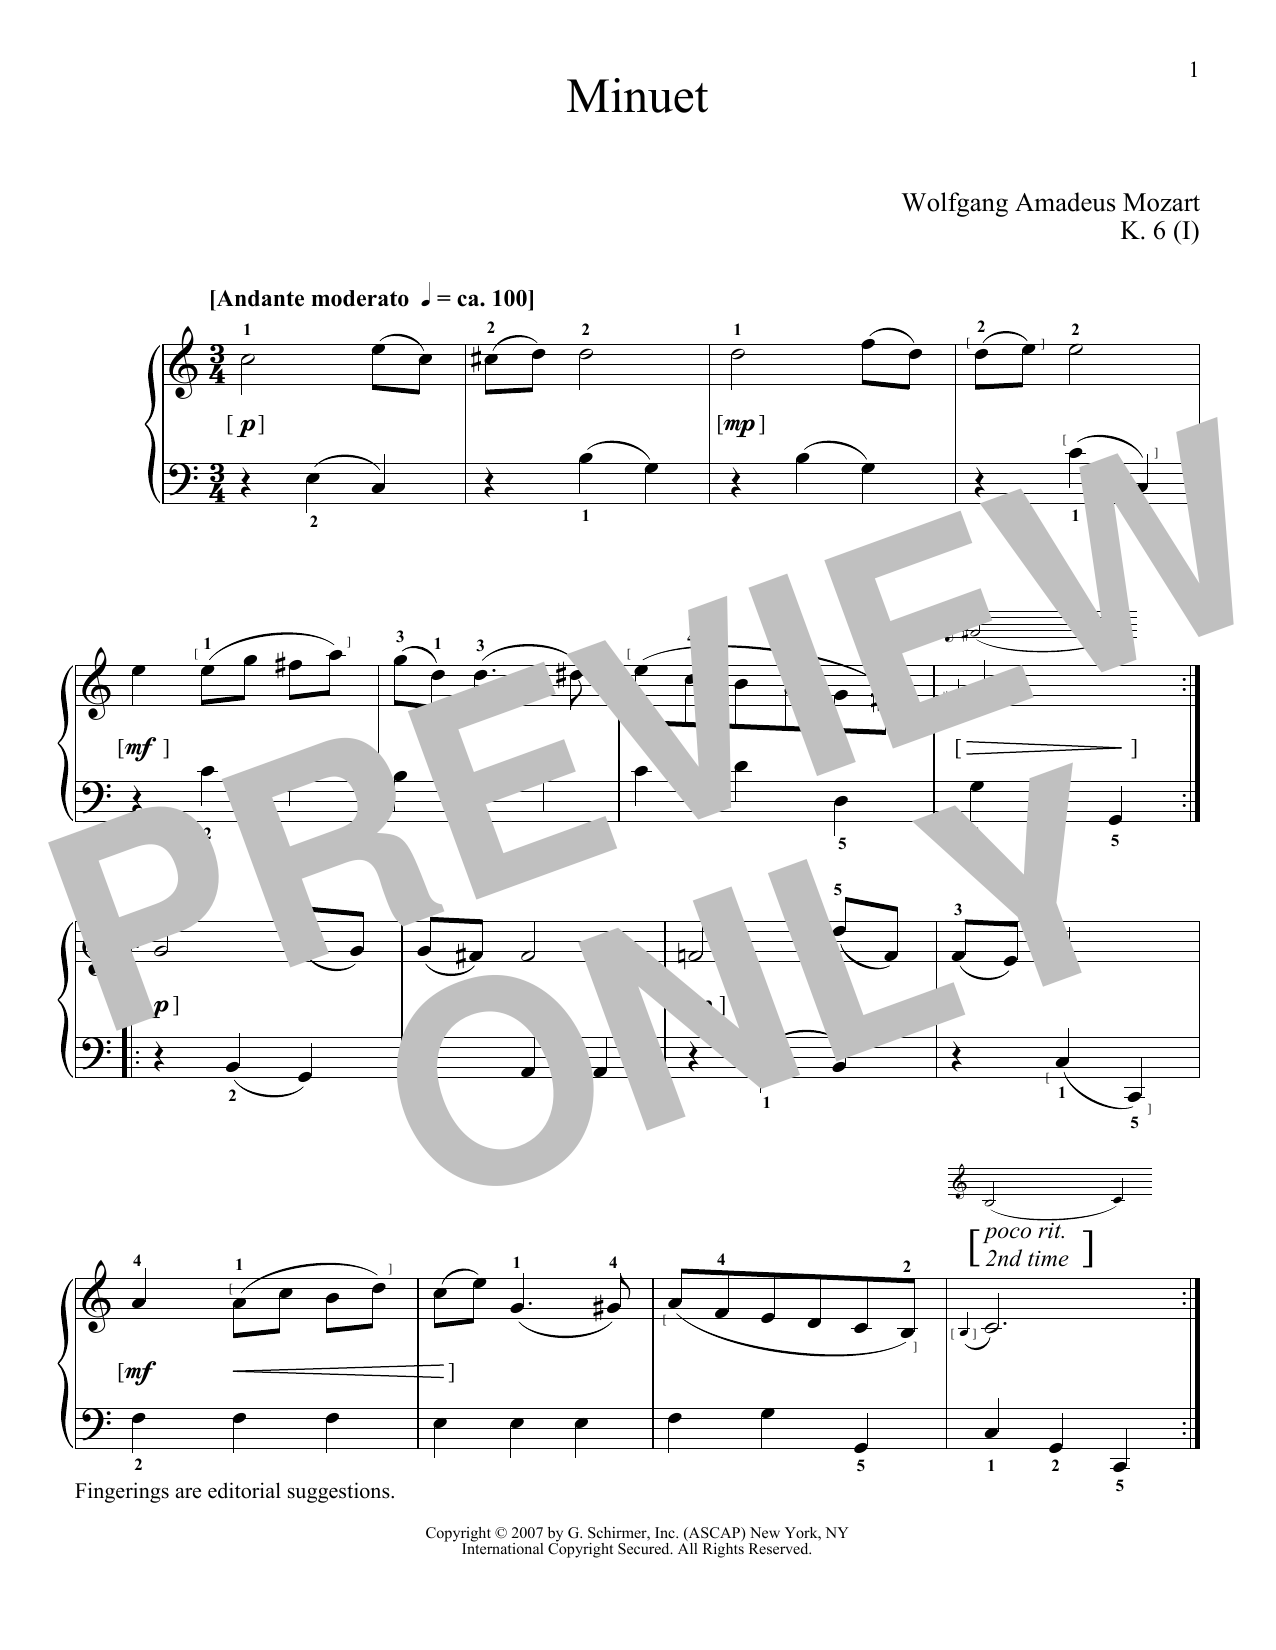 Wolfgang Amadeus Mozart Minuet In C Major, K. 6 sheet music notes and chords. Download Printable PDF.